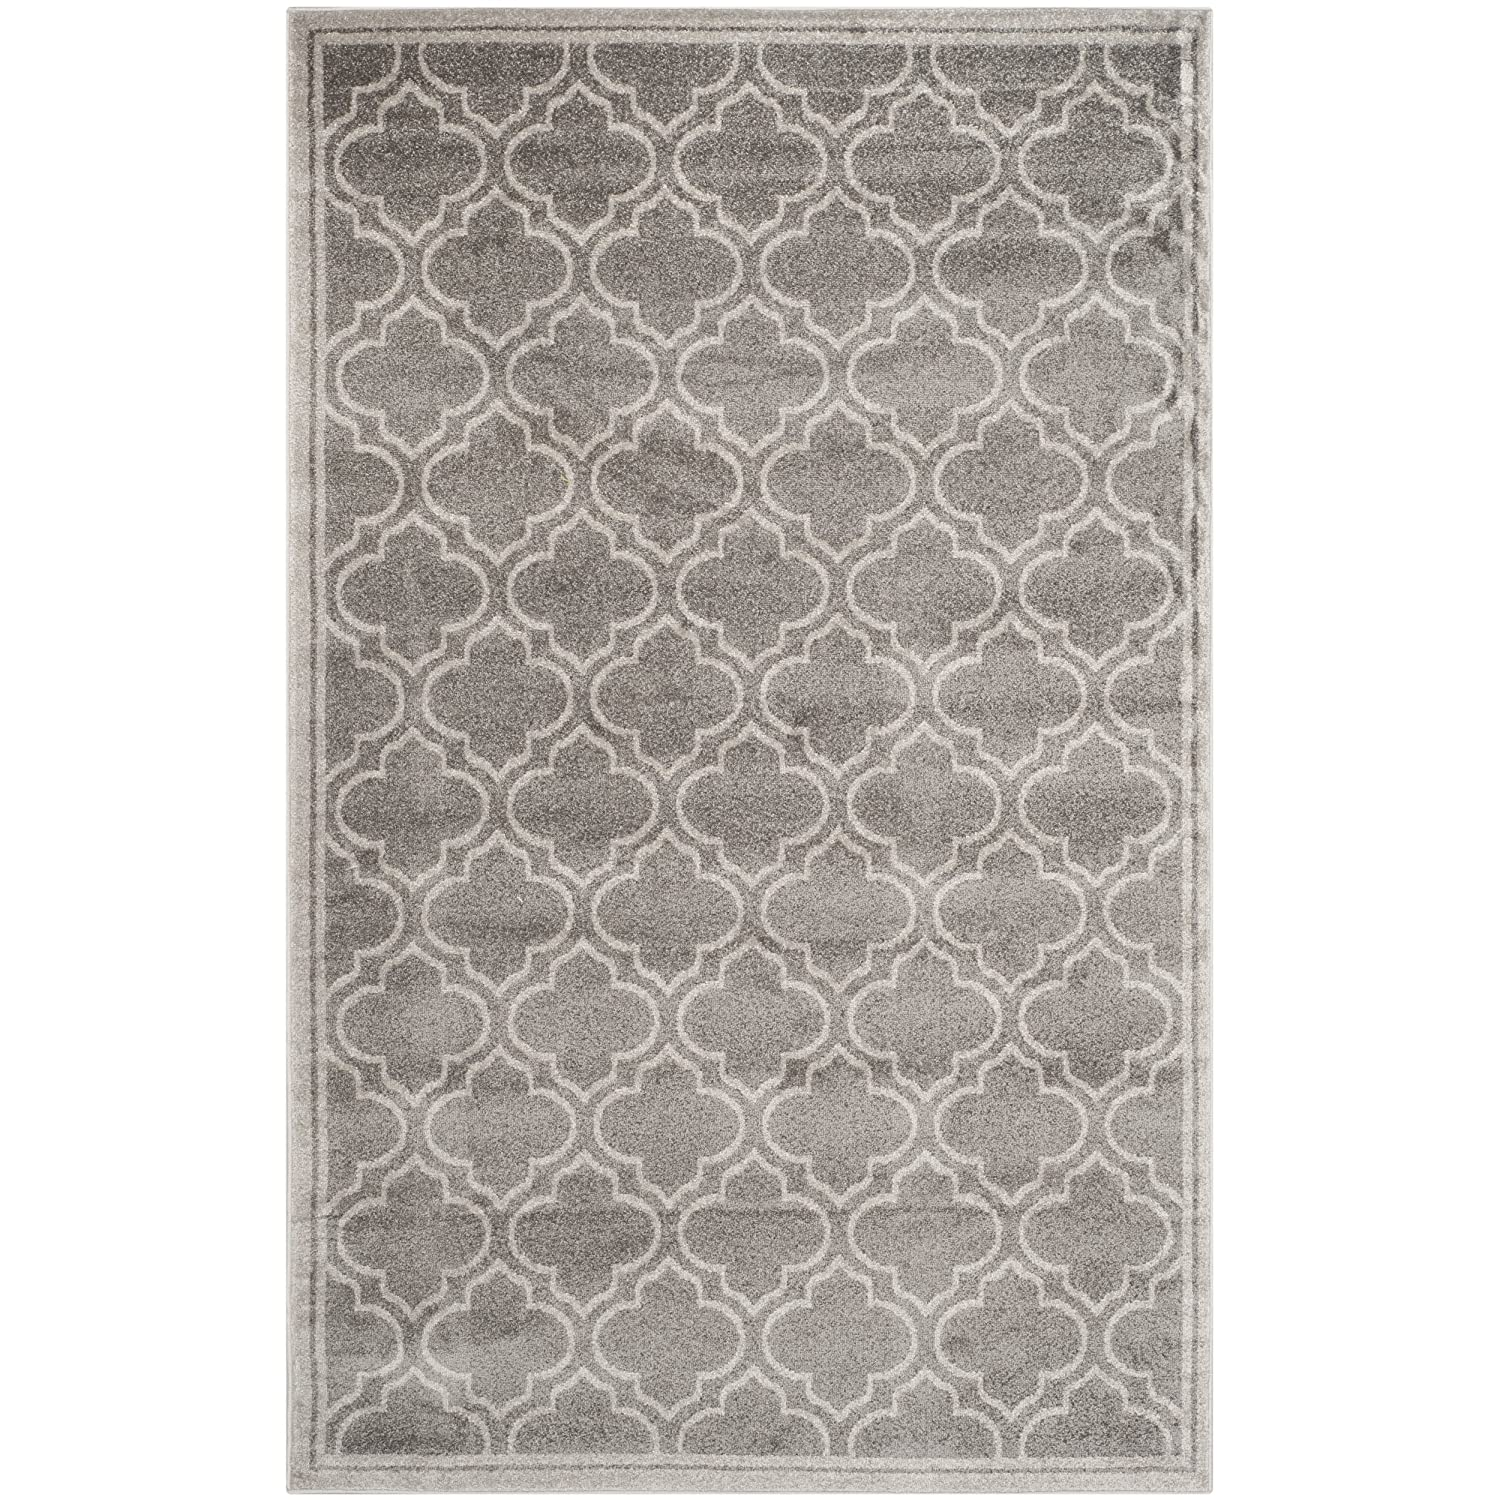 Amazon.com: Safavieh Amherst Collection AMT412C Grey And Light Grey Indoor/  Outdoor Area Rug (6u0027 X 9u0027): Kitchen U0026 Dining